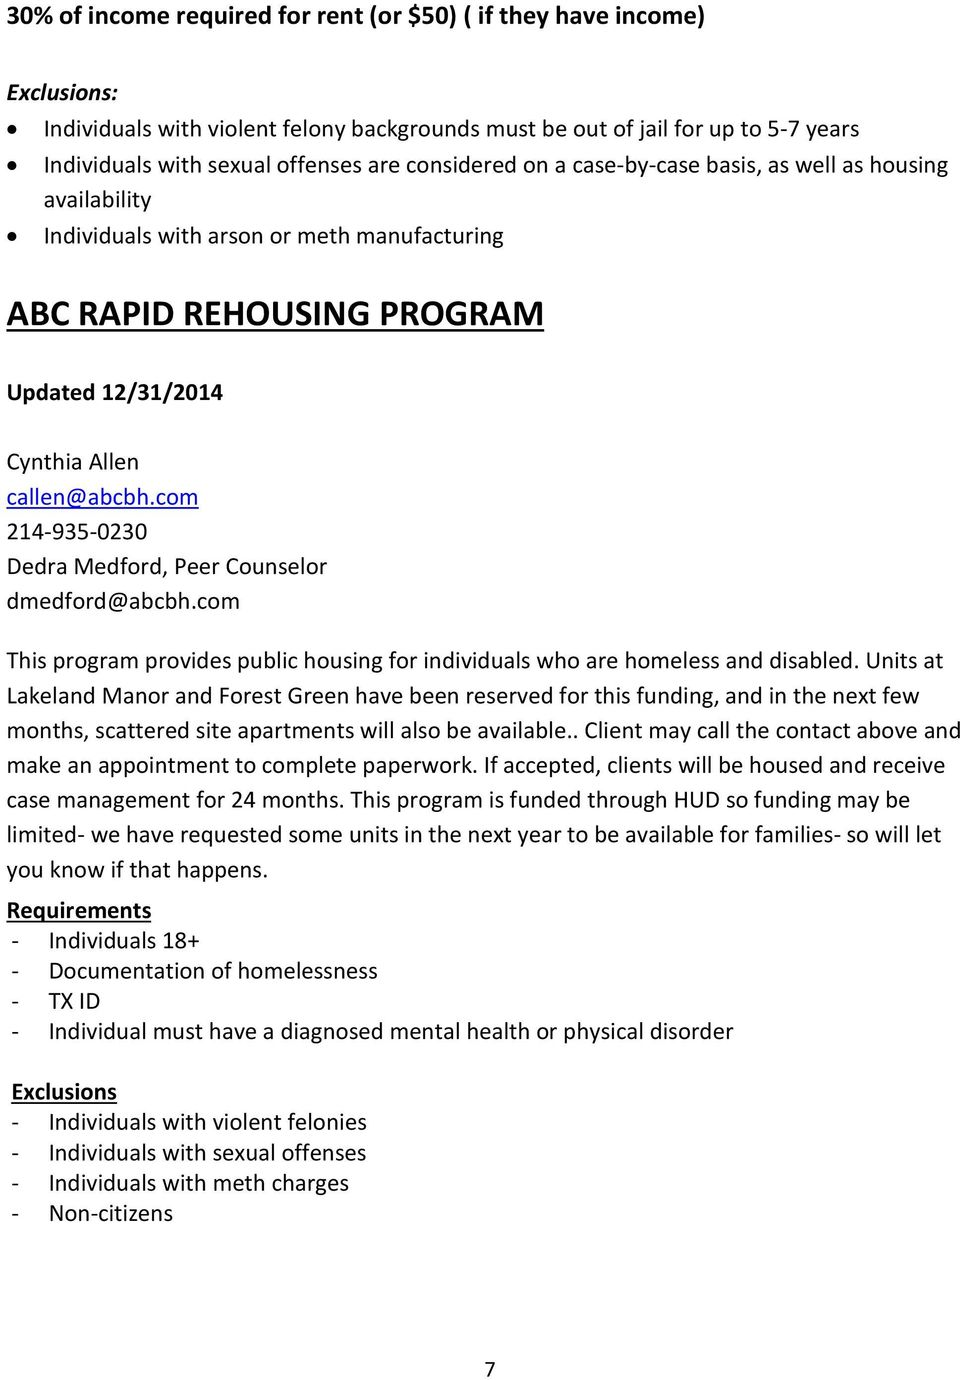 com 214-935-0230 Dedra Medford, Peer Counselor dmedford@abcbh.com This program provides public housing for individuals who are homeless and disabled.